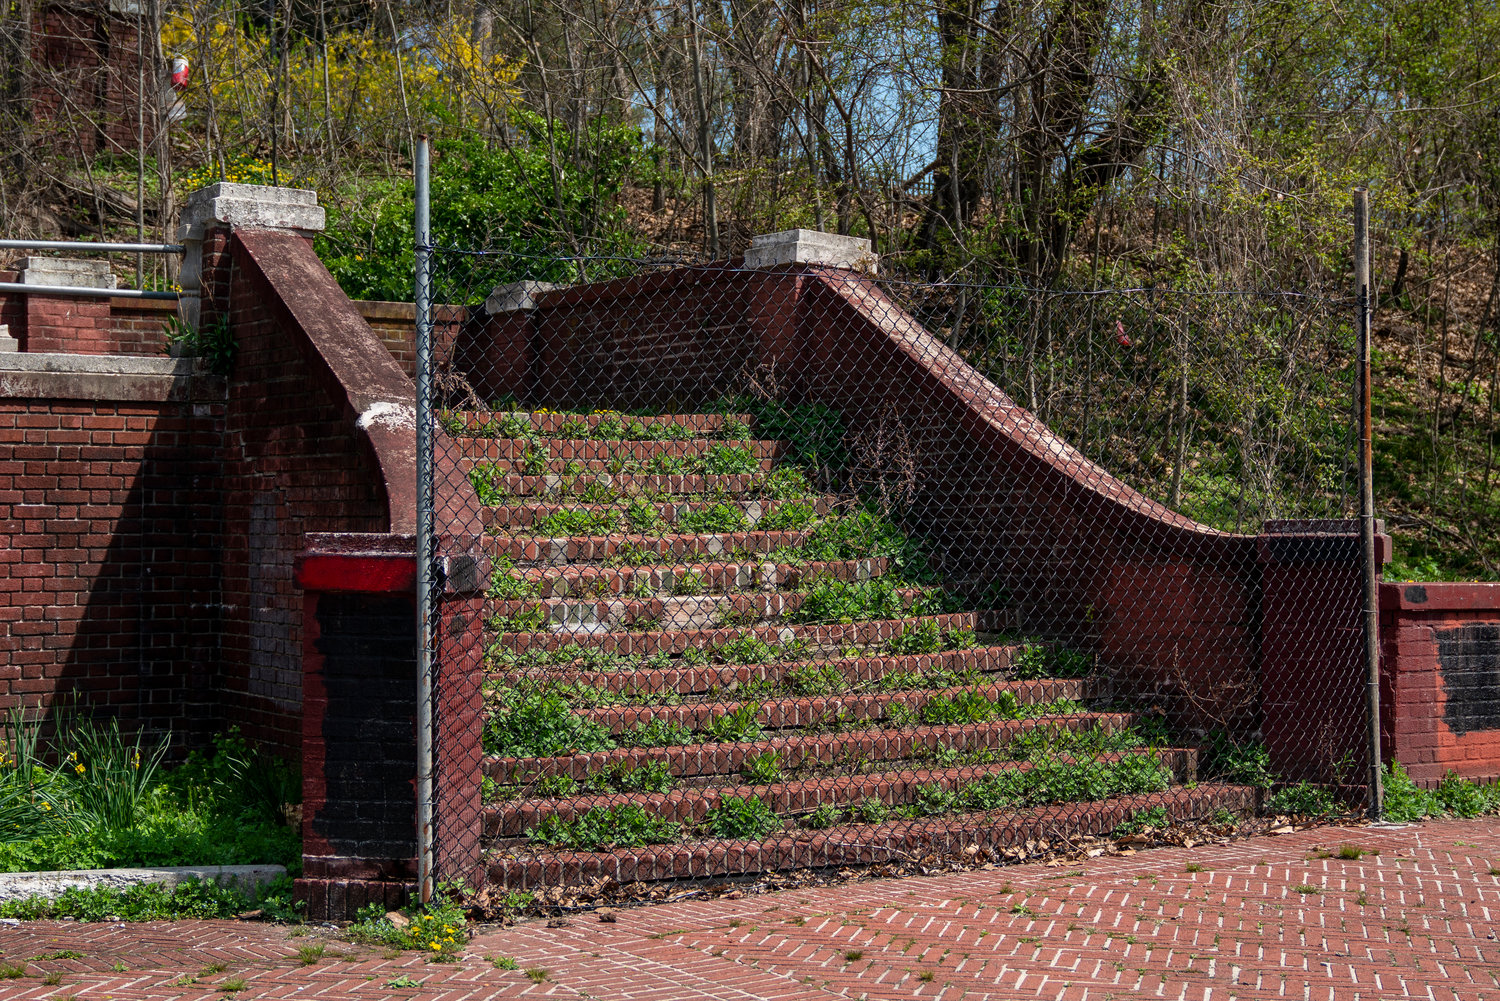 The red steps leading to the Van Cortlandt House were constructed by enslaved people, says Christina Taylor of the Van Cortlandt Park Alliance. Taylor is a part of the Enslaved People Project, which endeavors to draw attention to the contributions enslaved people made on and around the Van Cortlandt homestead.